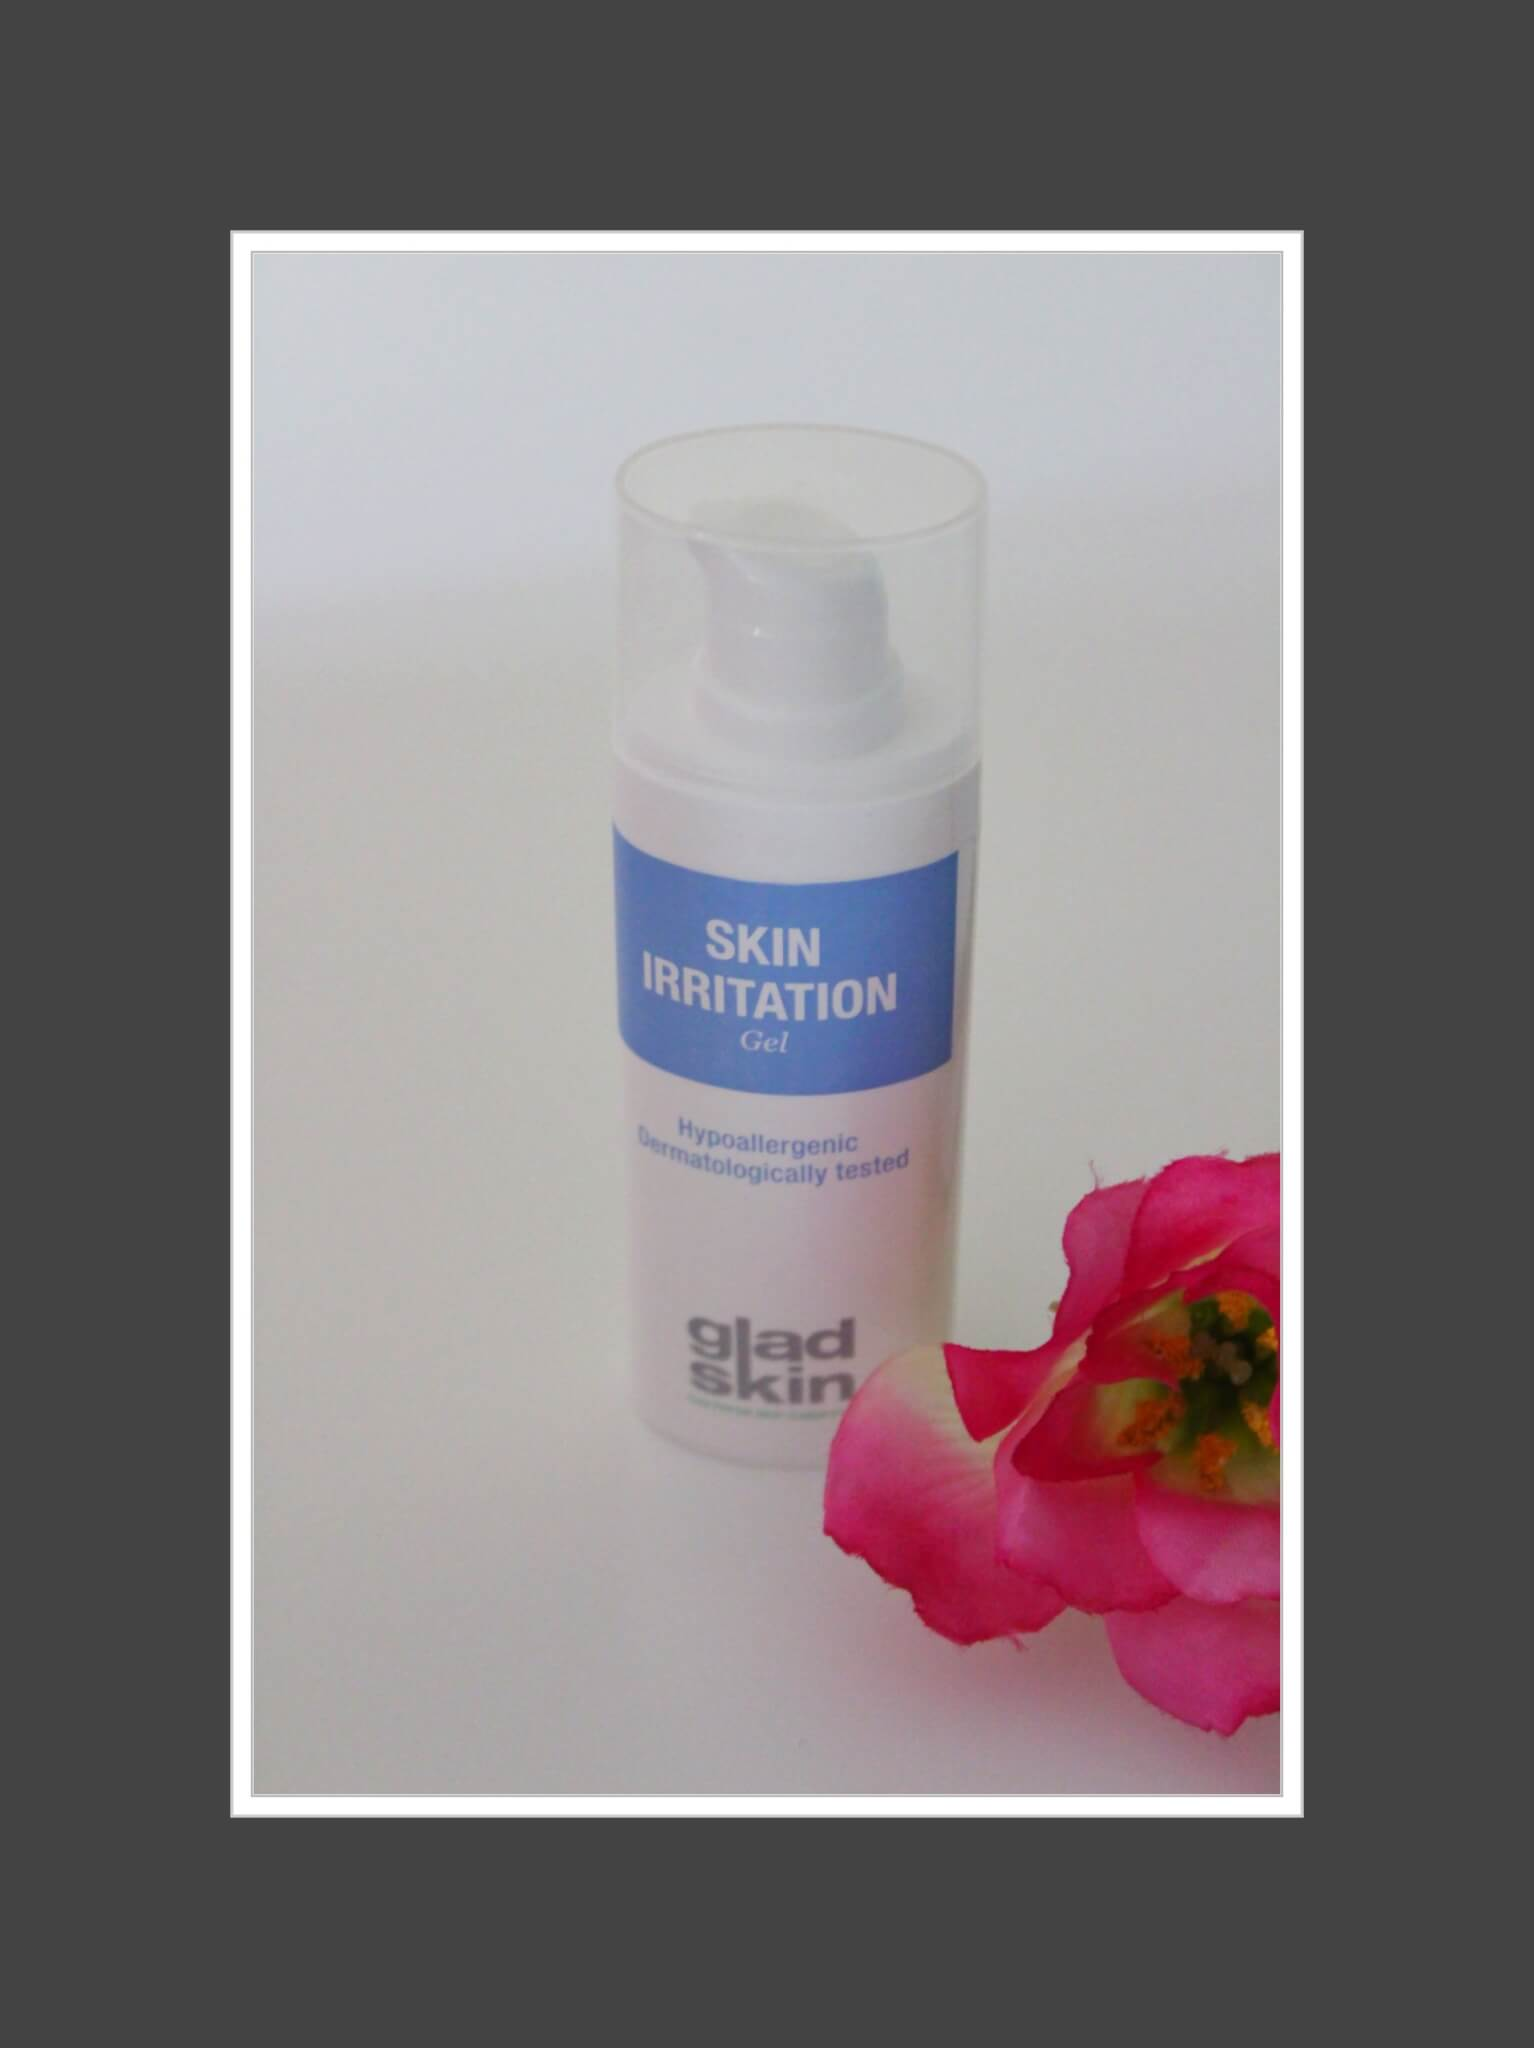 gladskin skin irritation gel